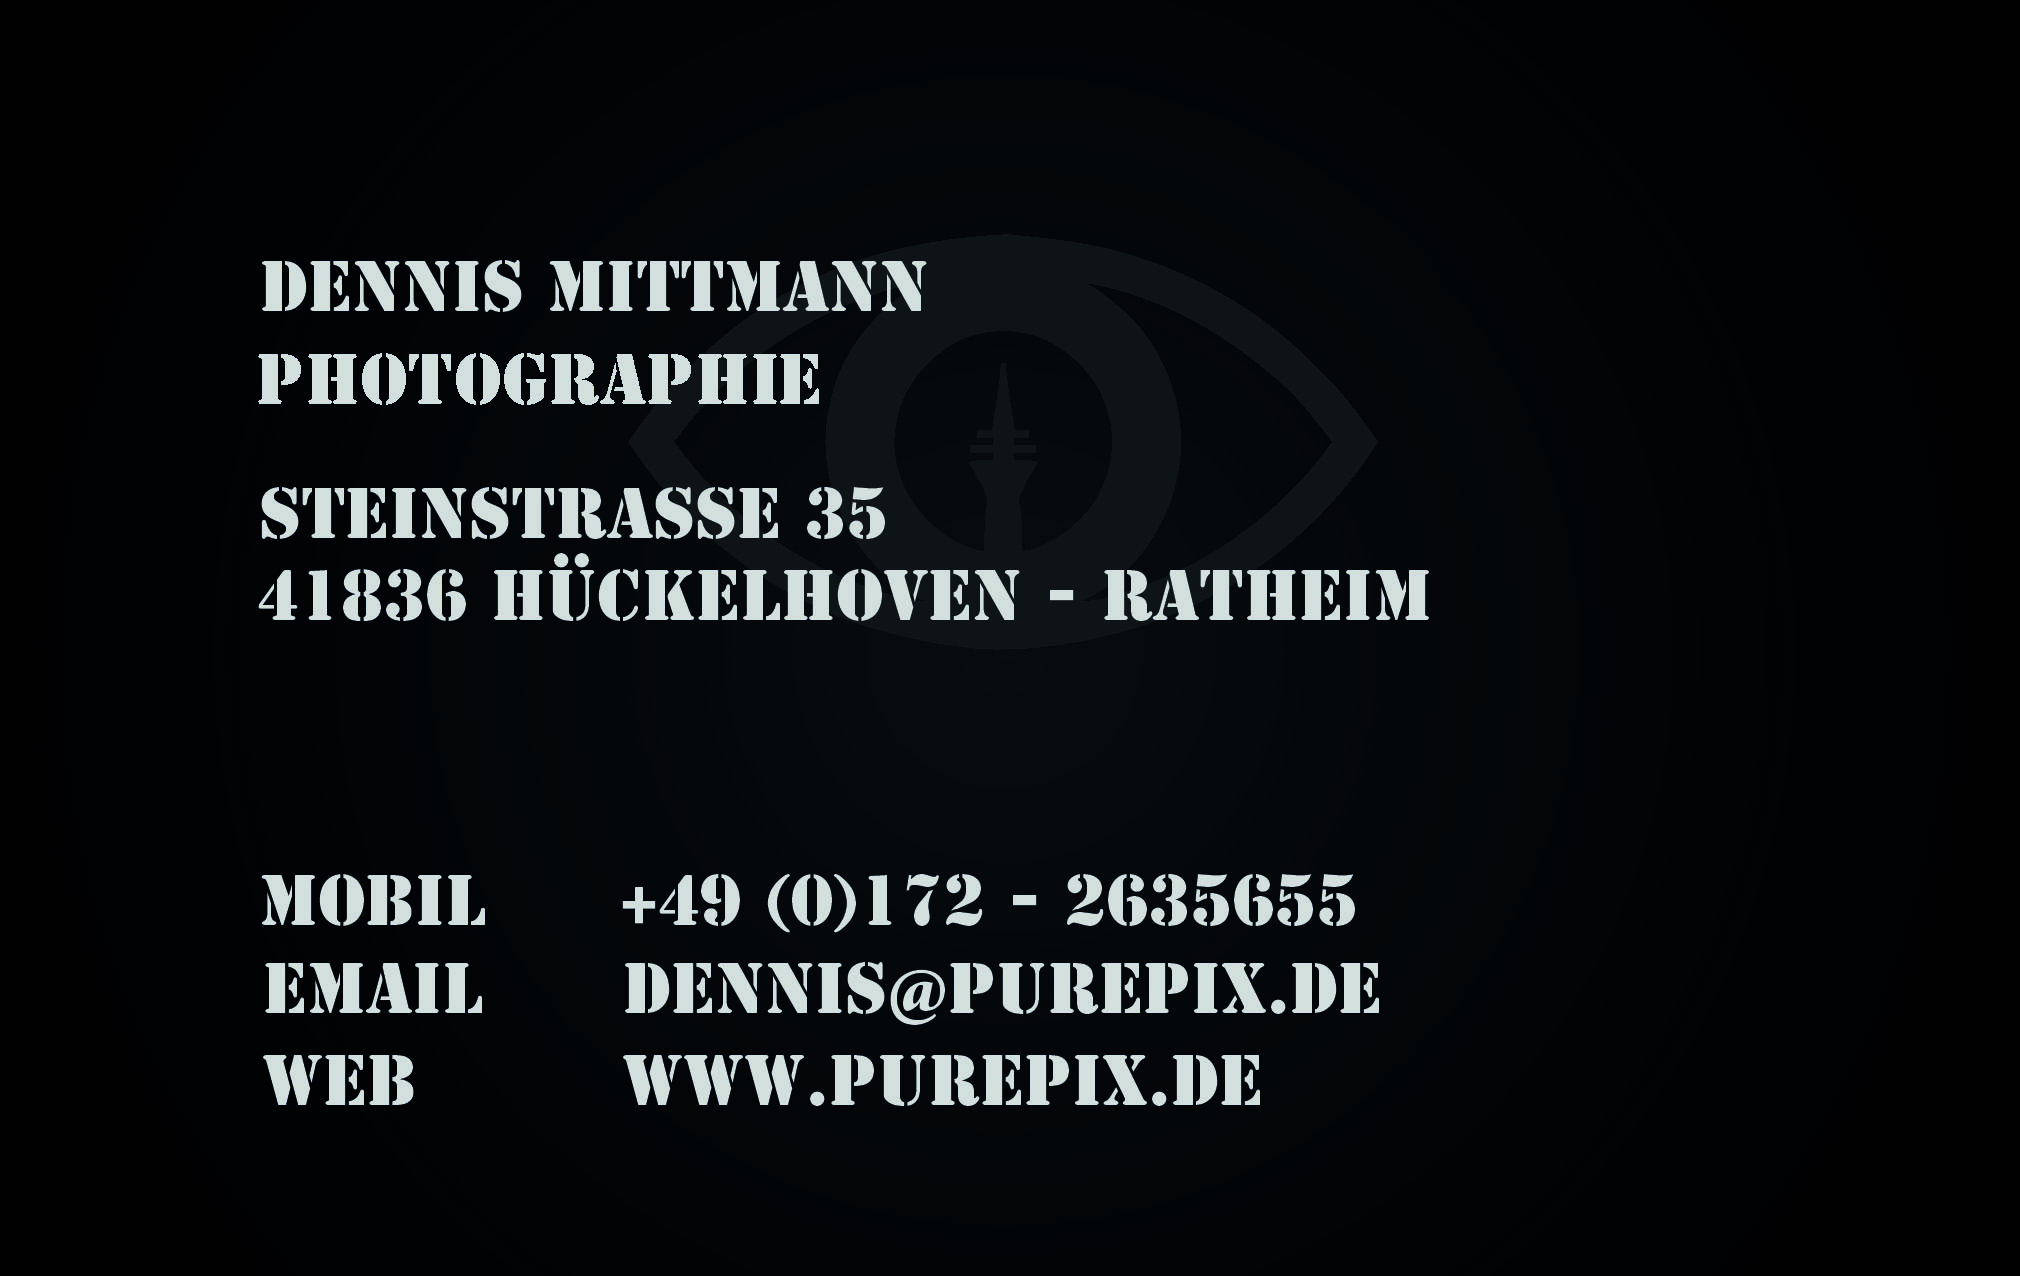 Dennis Mittmann Photography